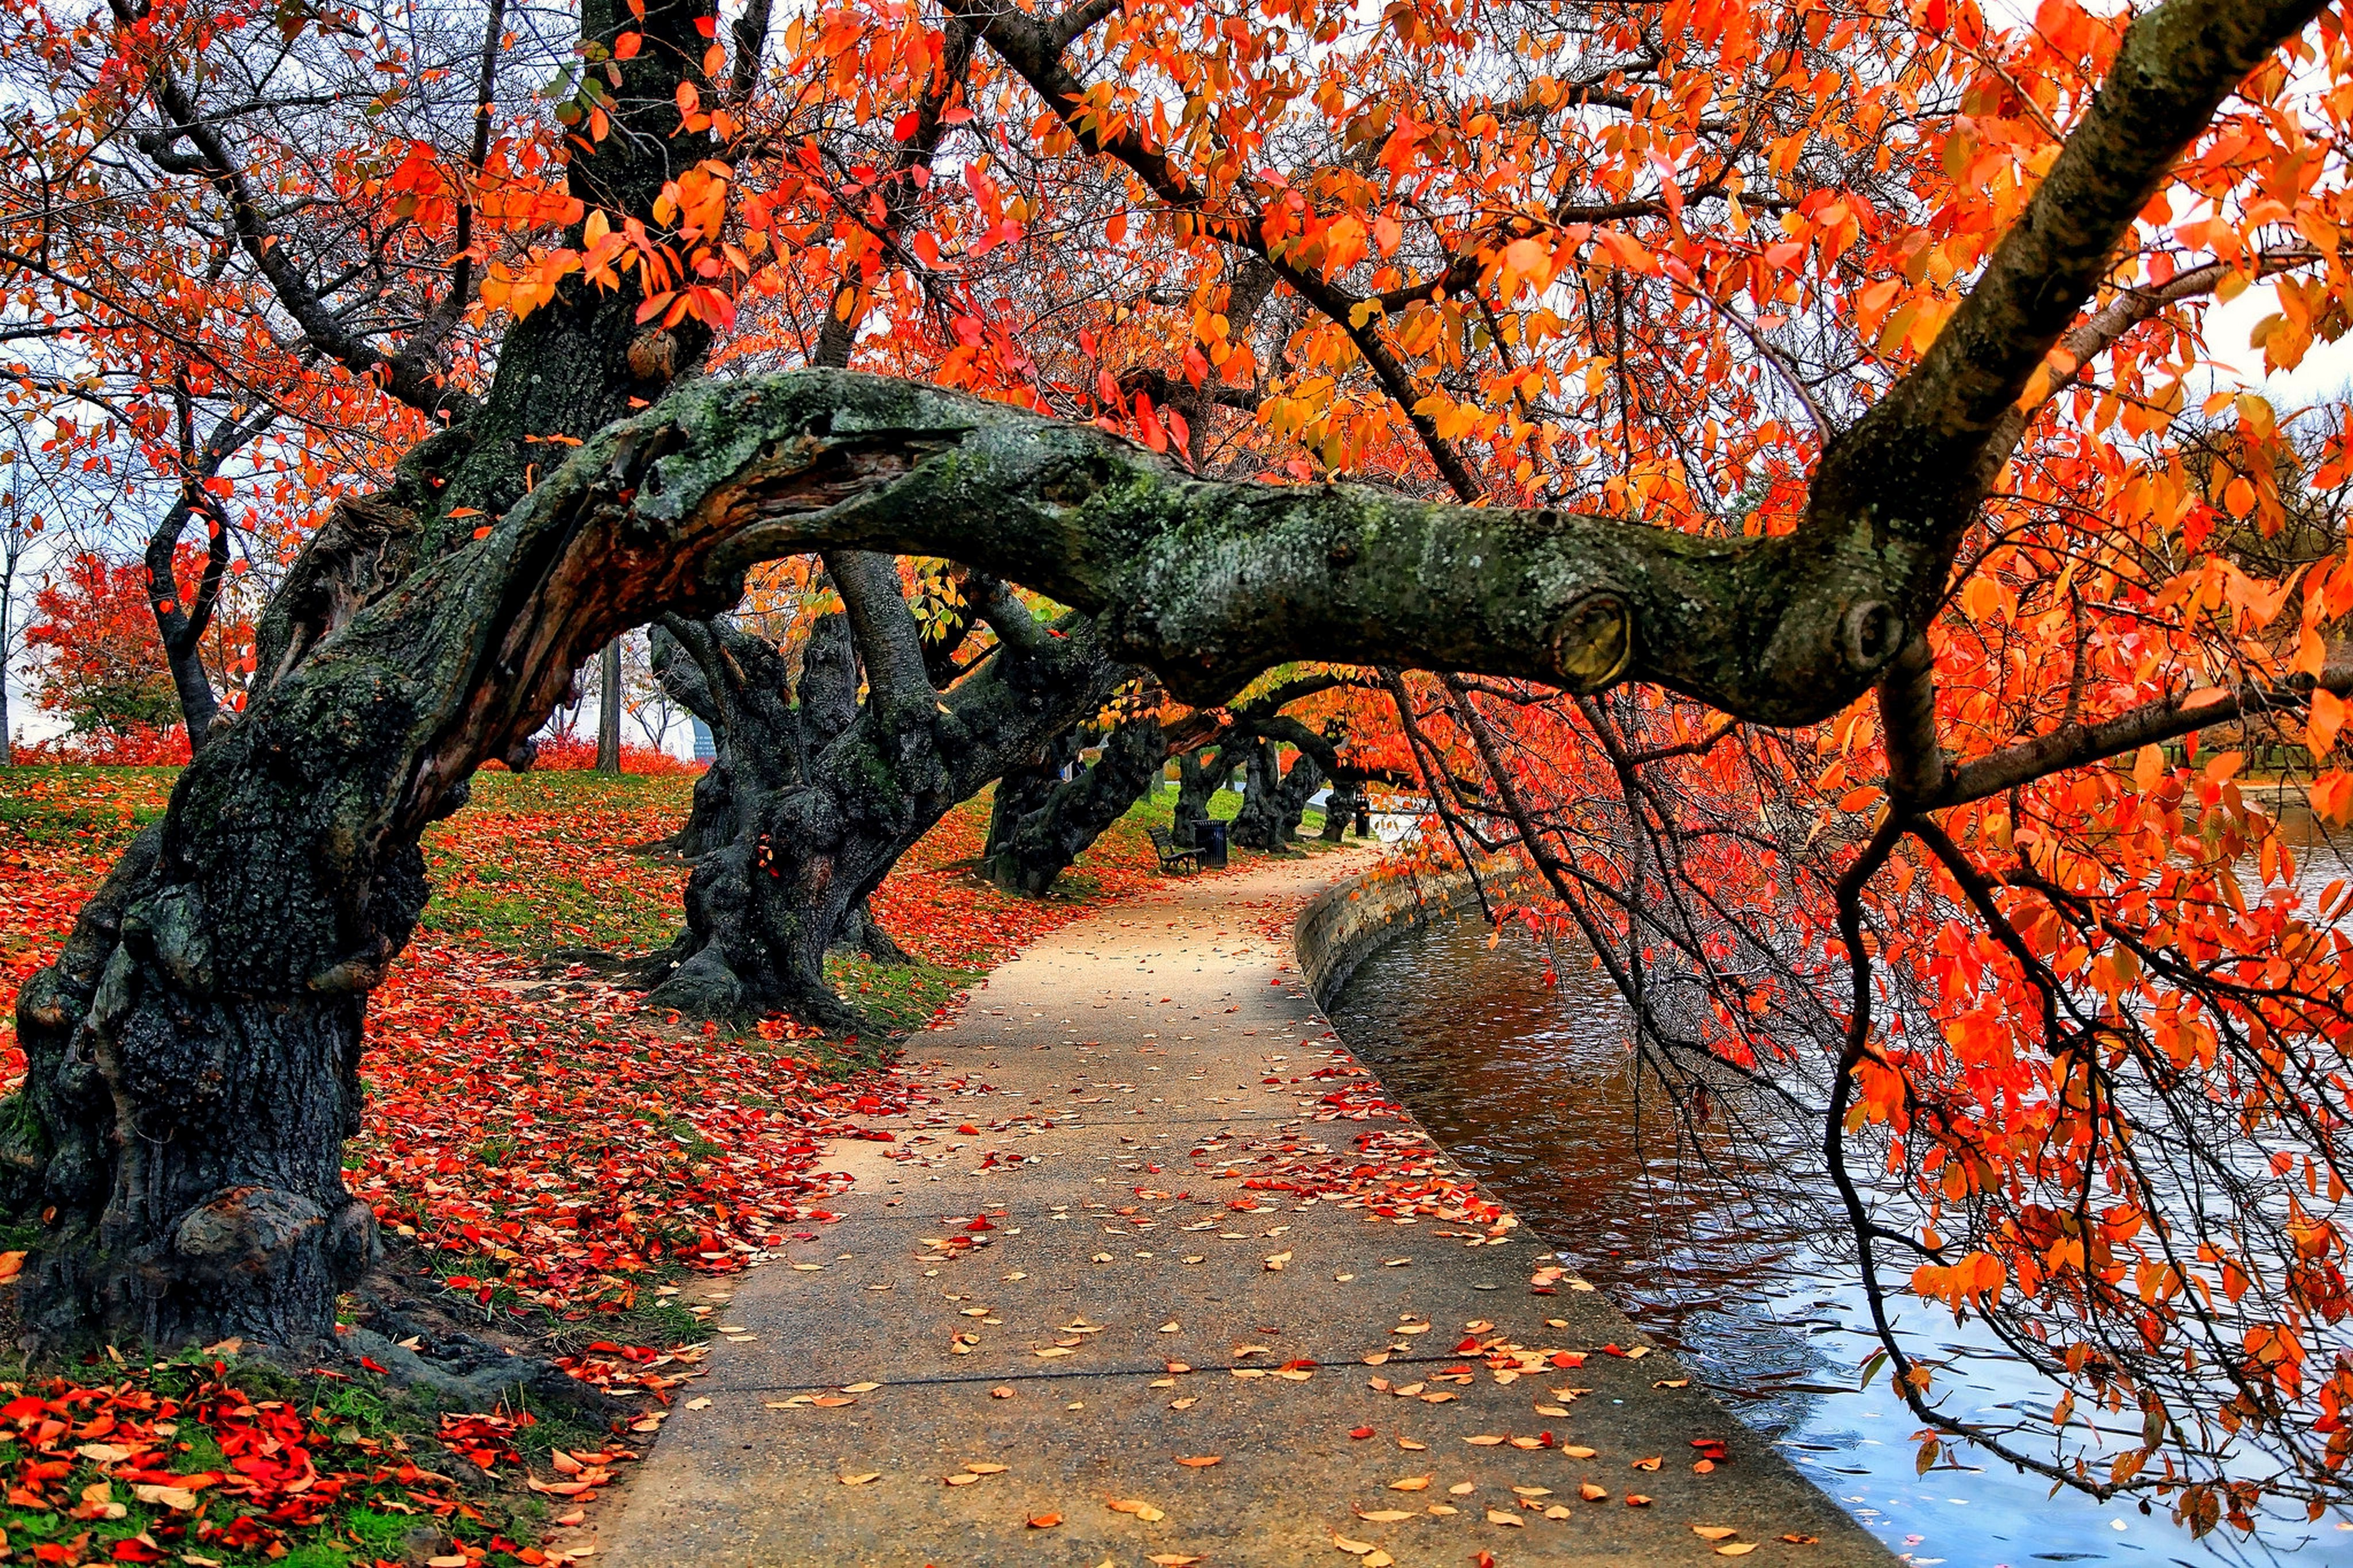 Fall Foliage Wallpaper 1920x1080 Nature Trees Fall Leaves Red Path Park Water Bench